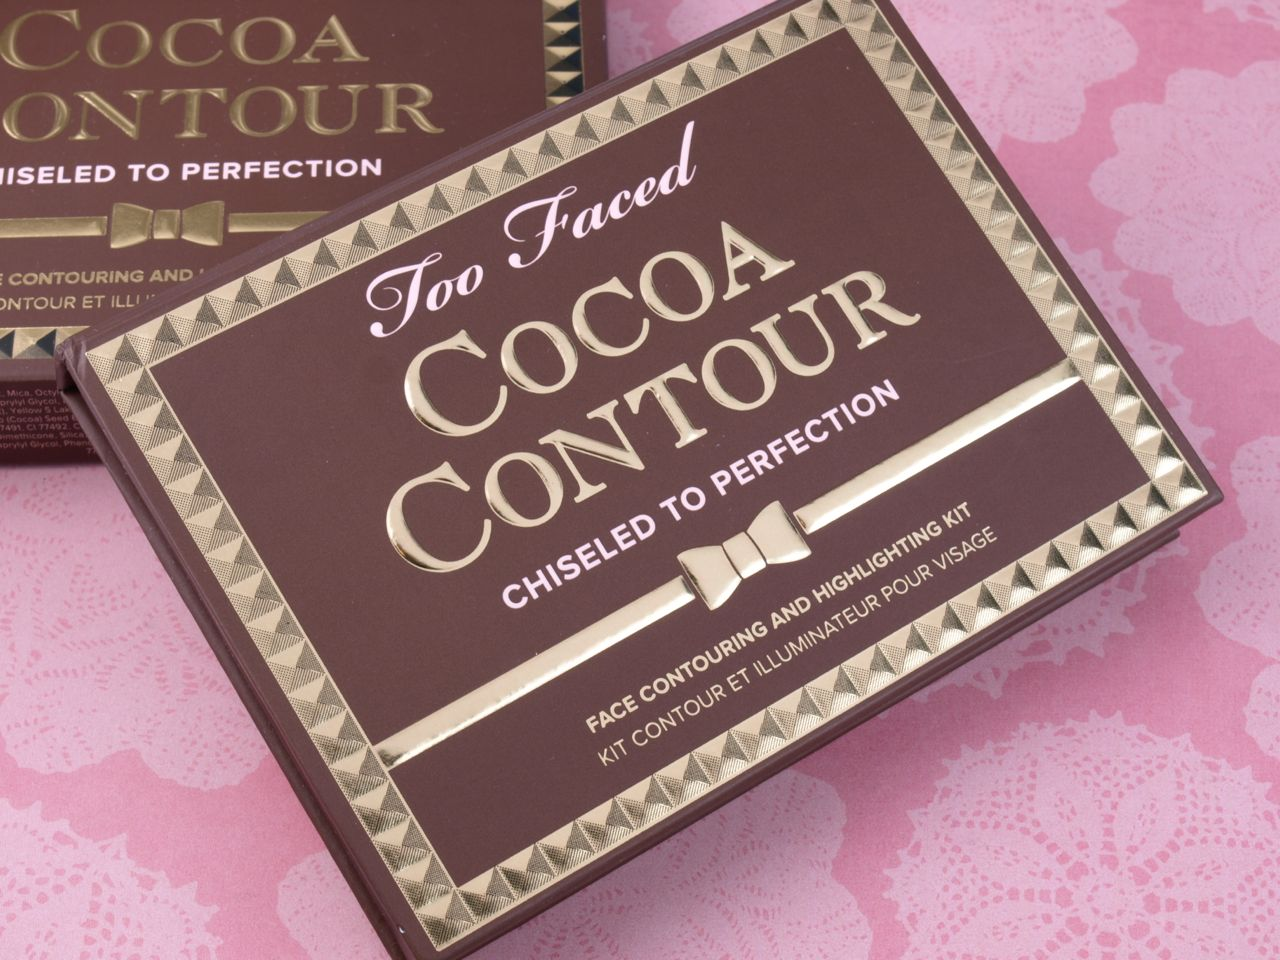 Too Faced Cocoa Contour Chiseled to Perfection Palette: Review and Swatches